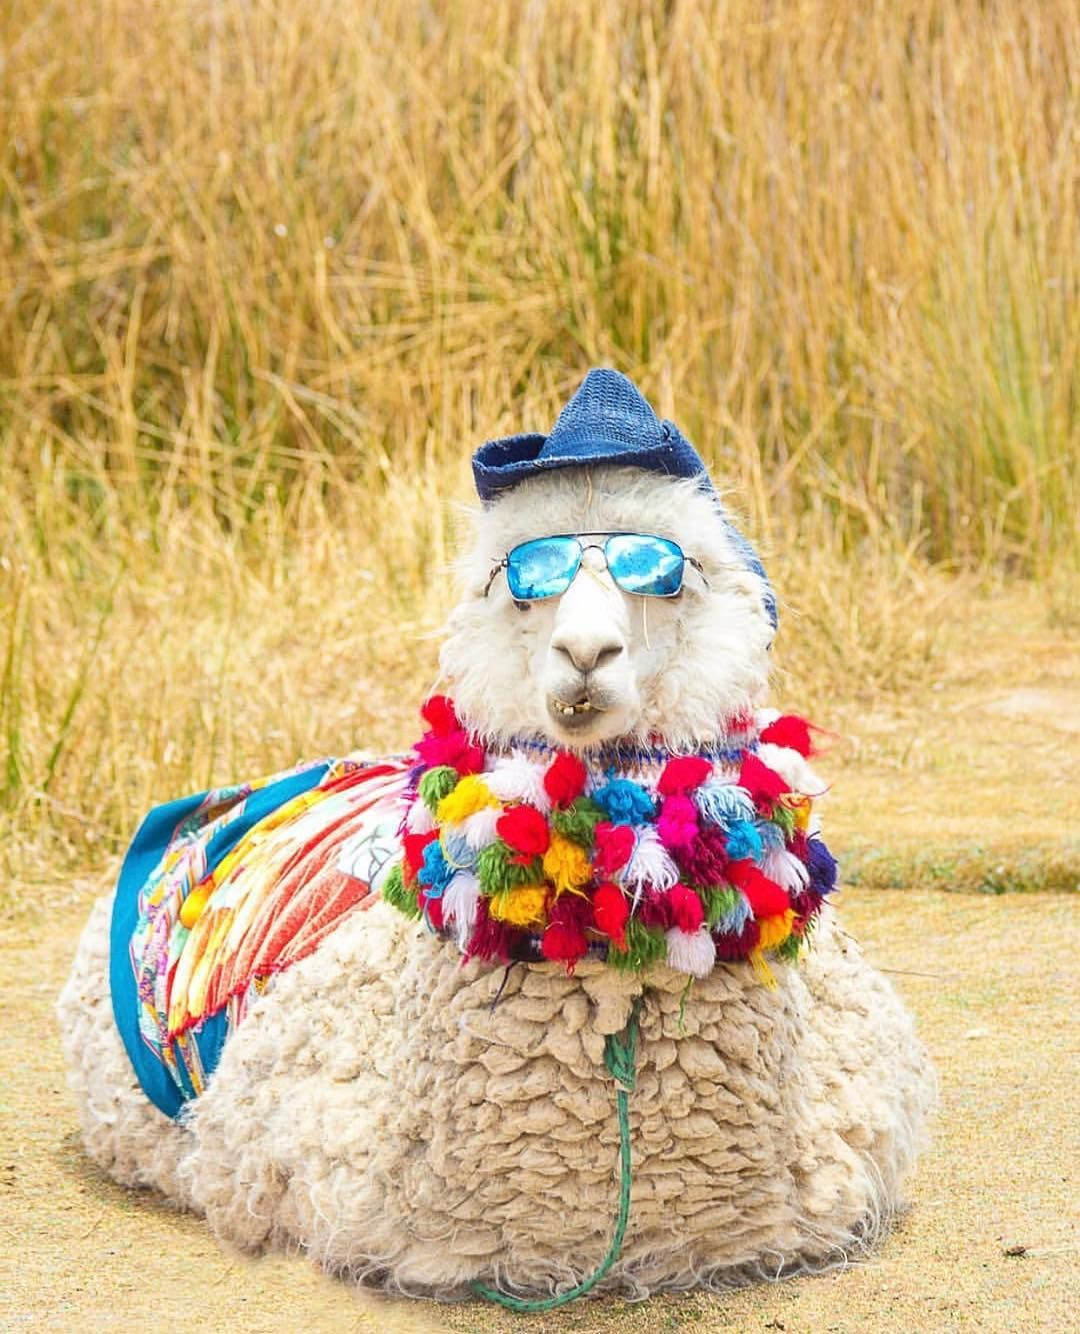 4 Rental Ideas for Fat Llama Fashionistas